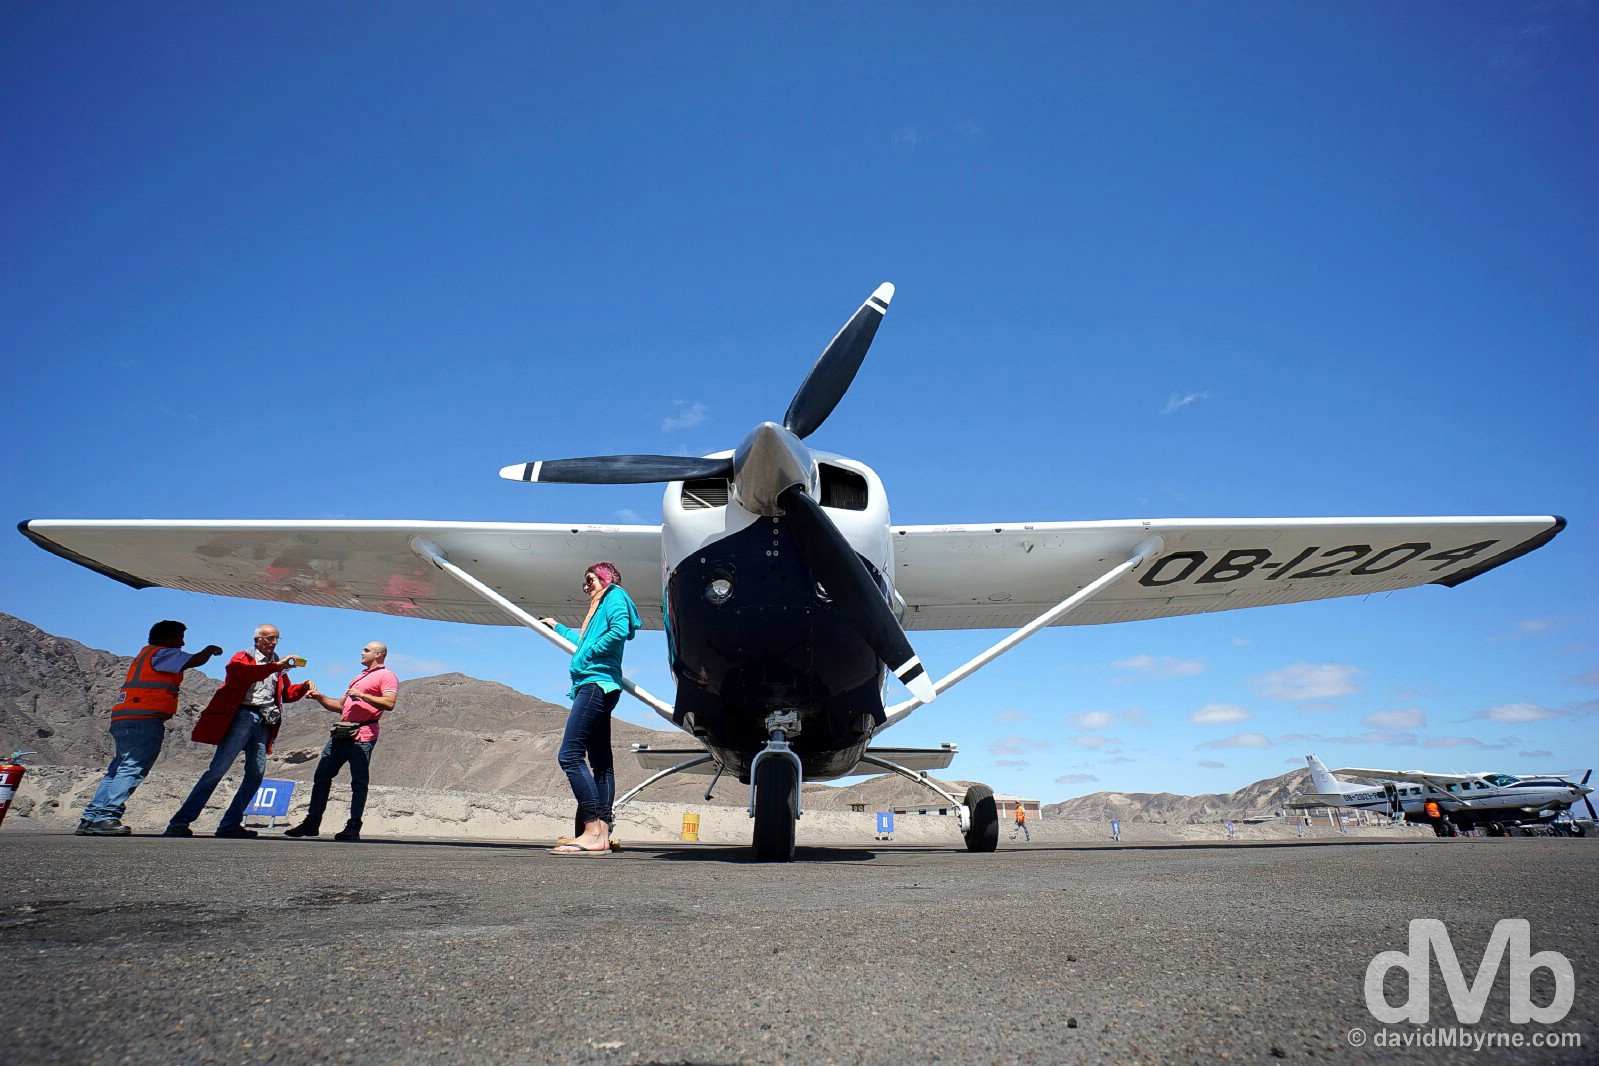 Cessna C206 on the tarmac of Nasca Airport prior to departure for a flight over the Nasca Plain to view the Nasca Lines. Nasca, southern Peru. August 11, 2015.